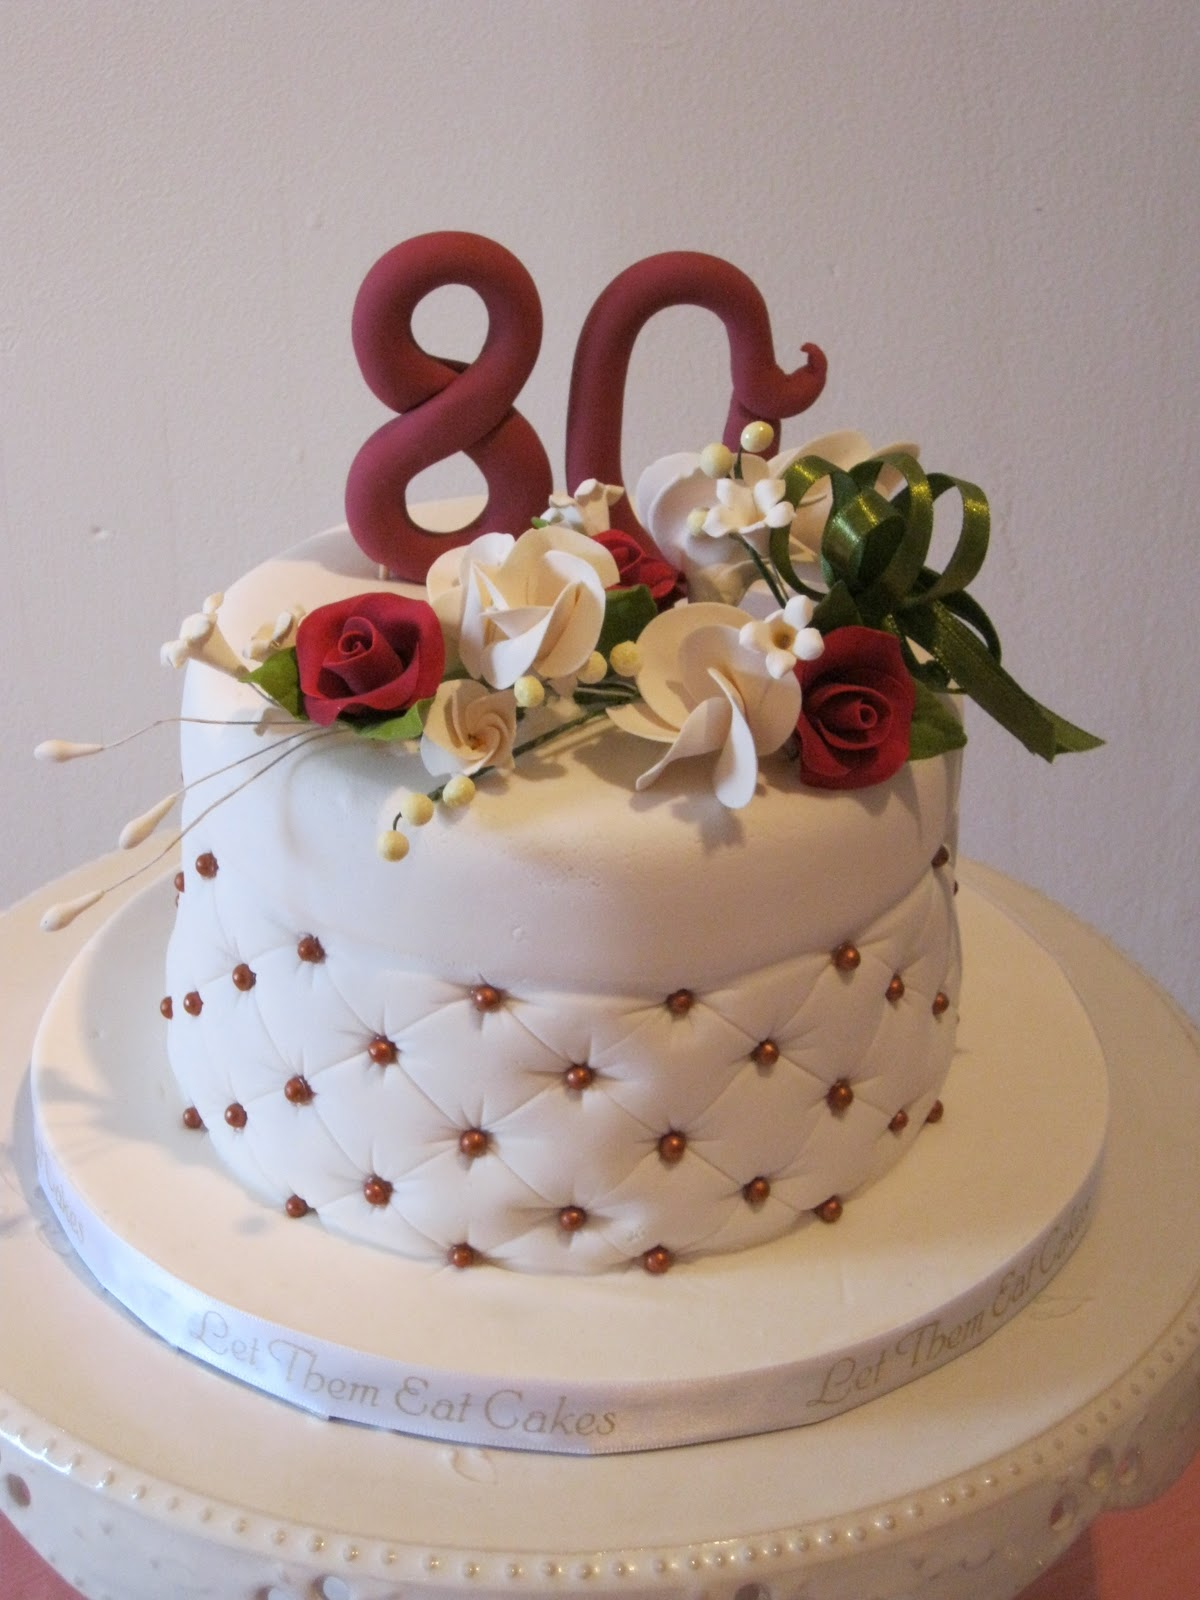 ... 80th Birthday Cakes Birthday Cake Images For Girls Clip Art Pictures